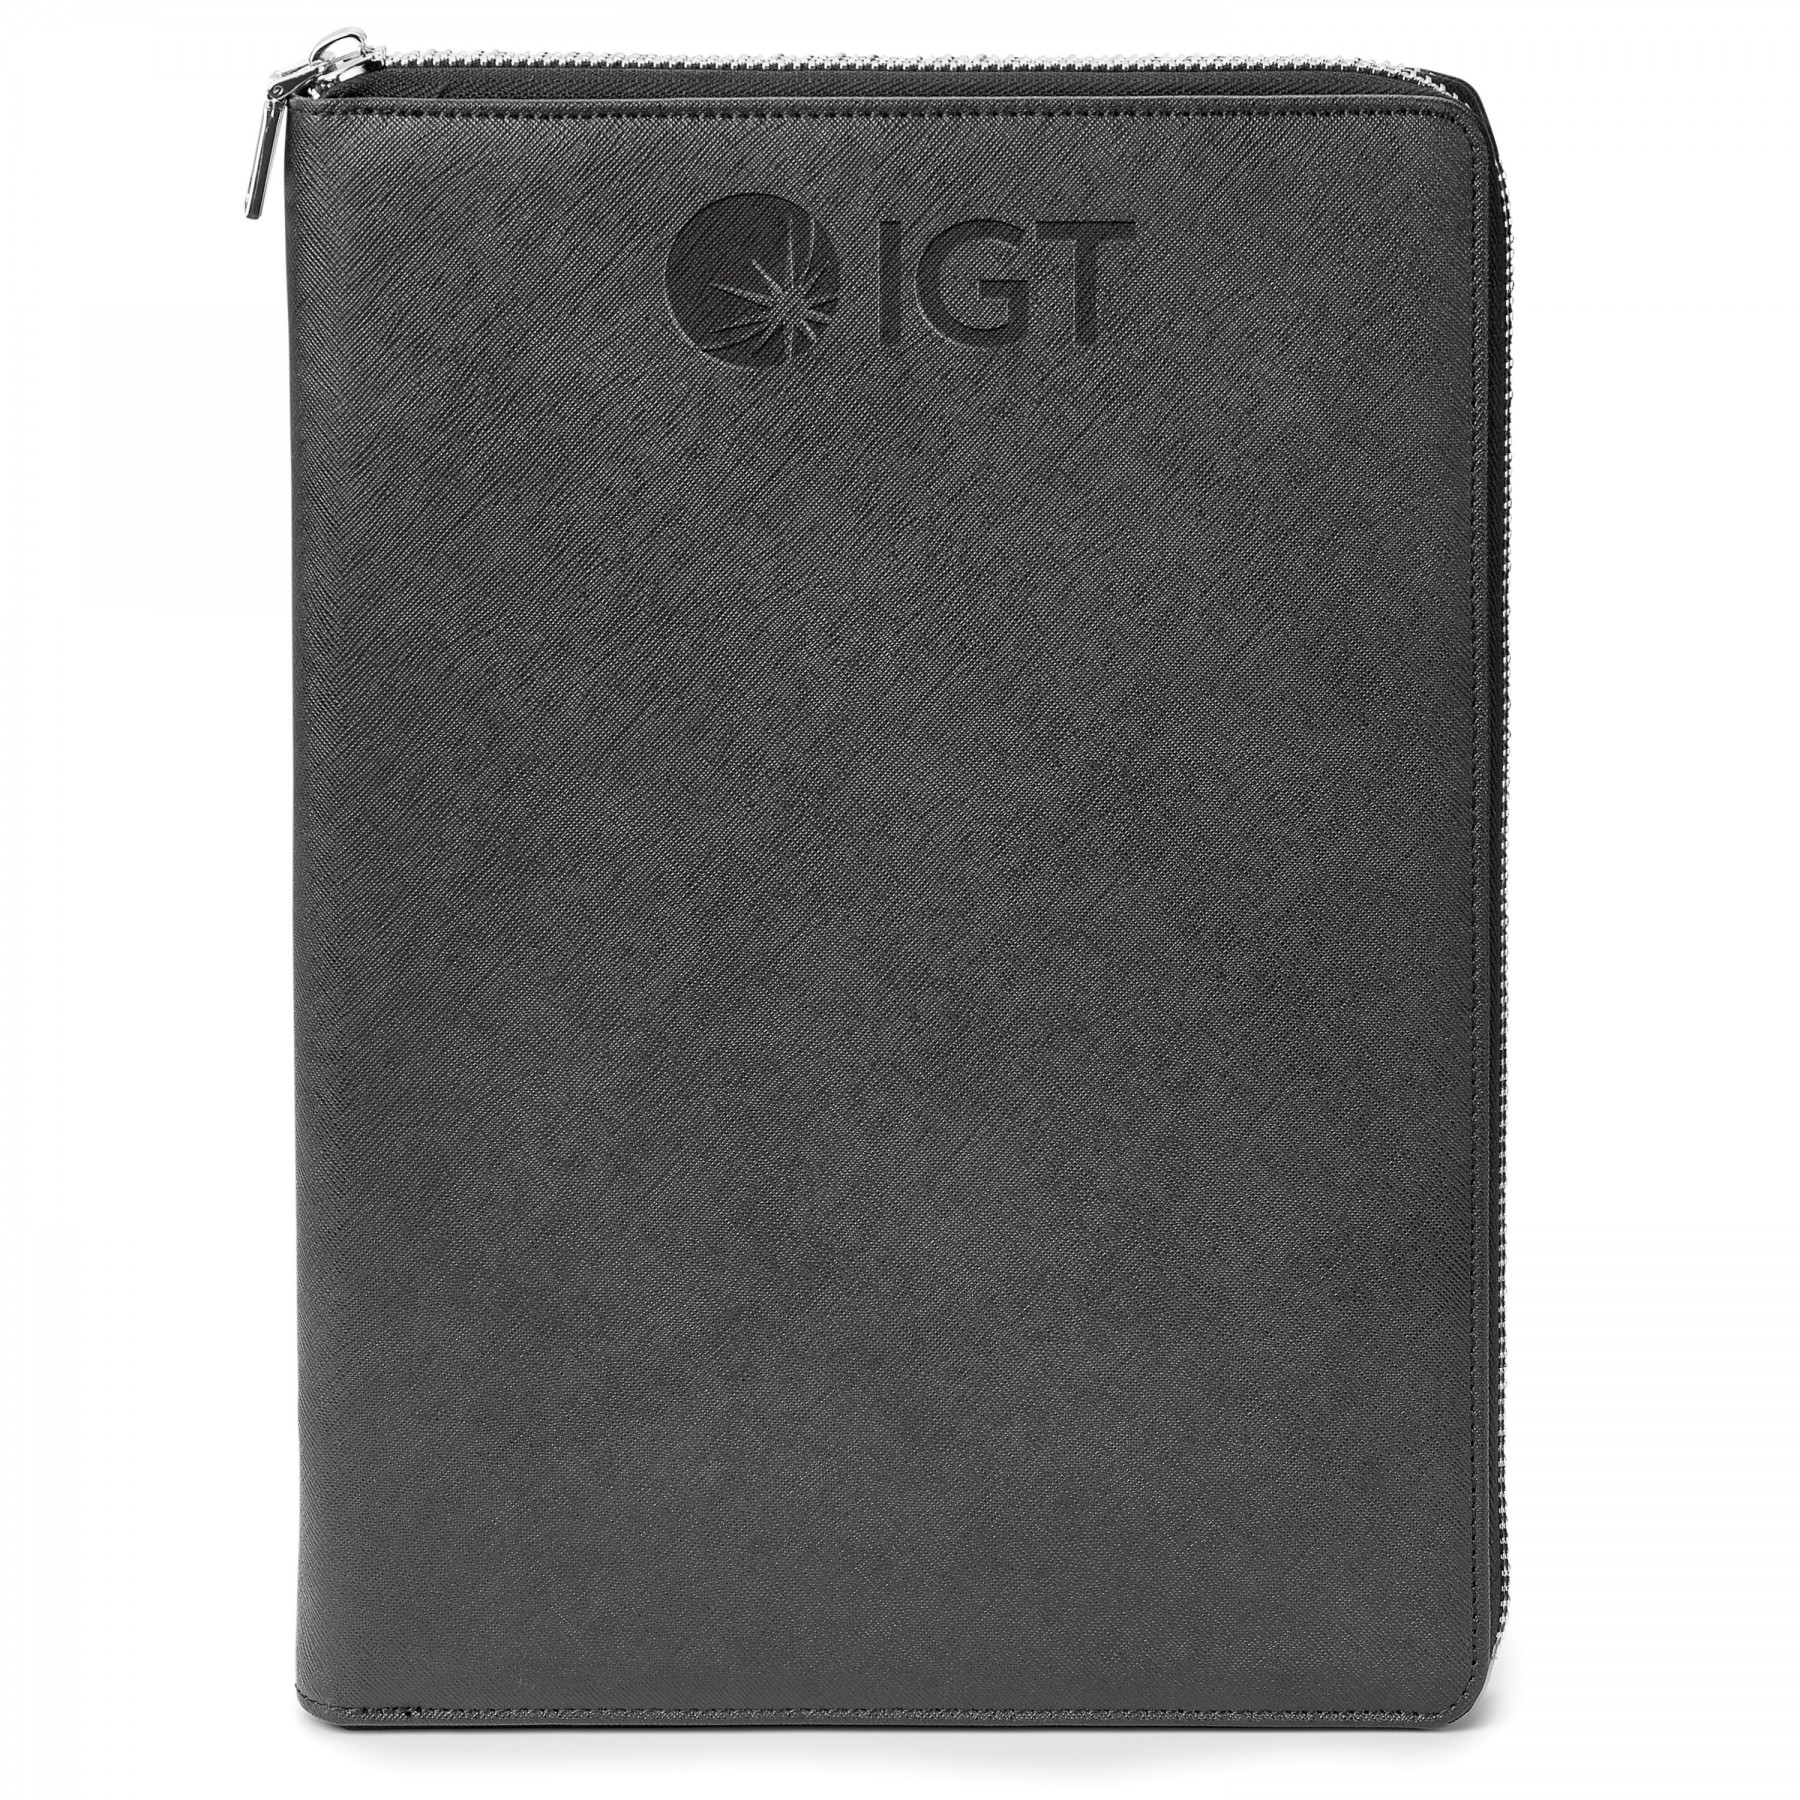 Genuine Leather A4 Size Rfid Portfolio, ST605, Debossed Logo